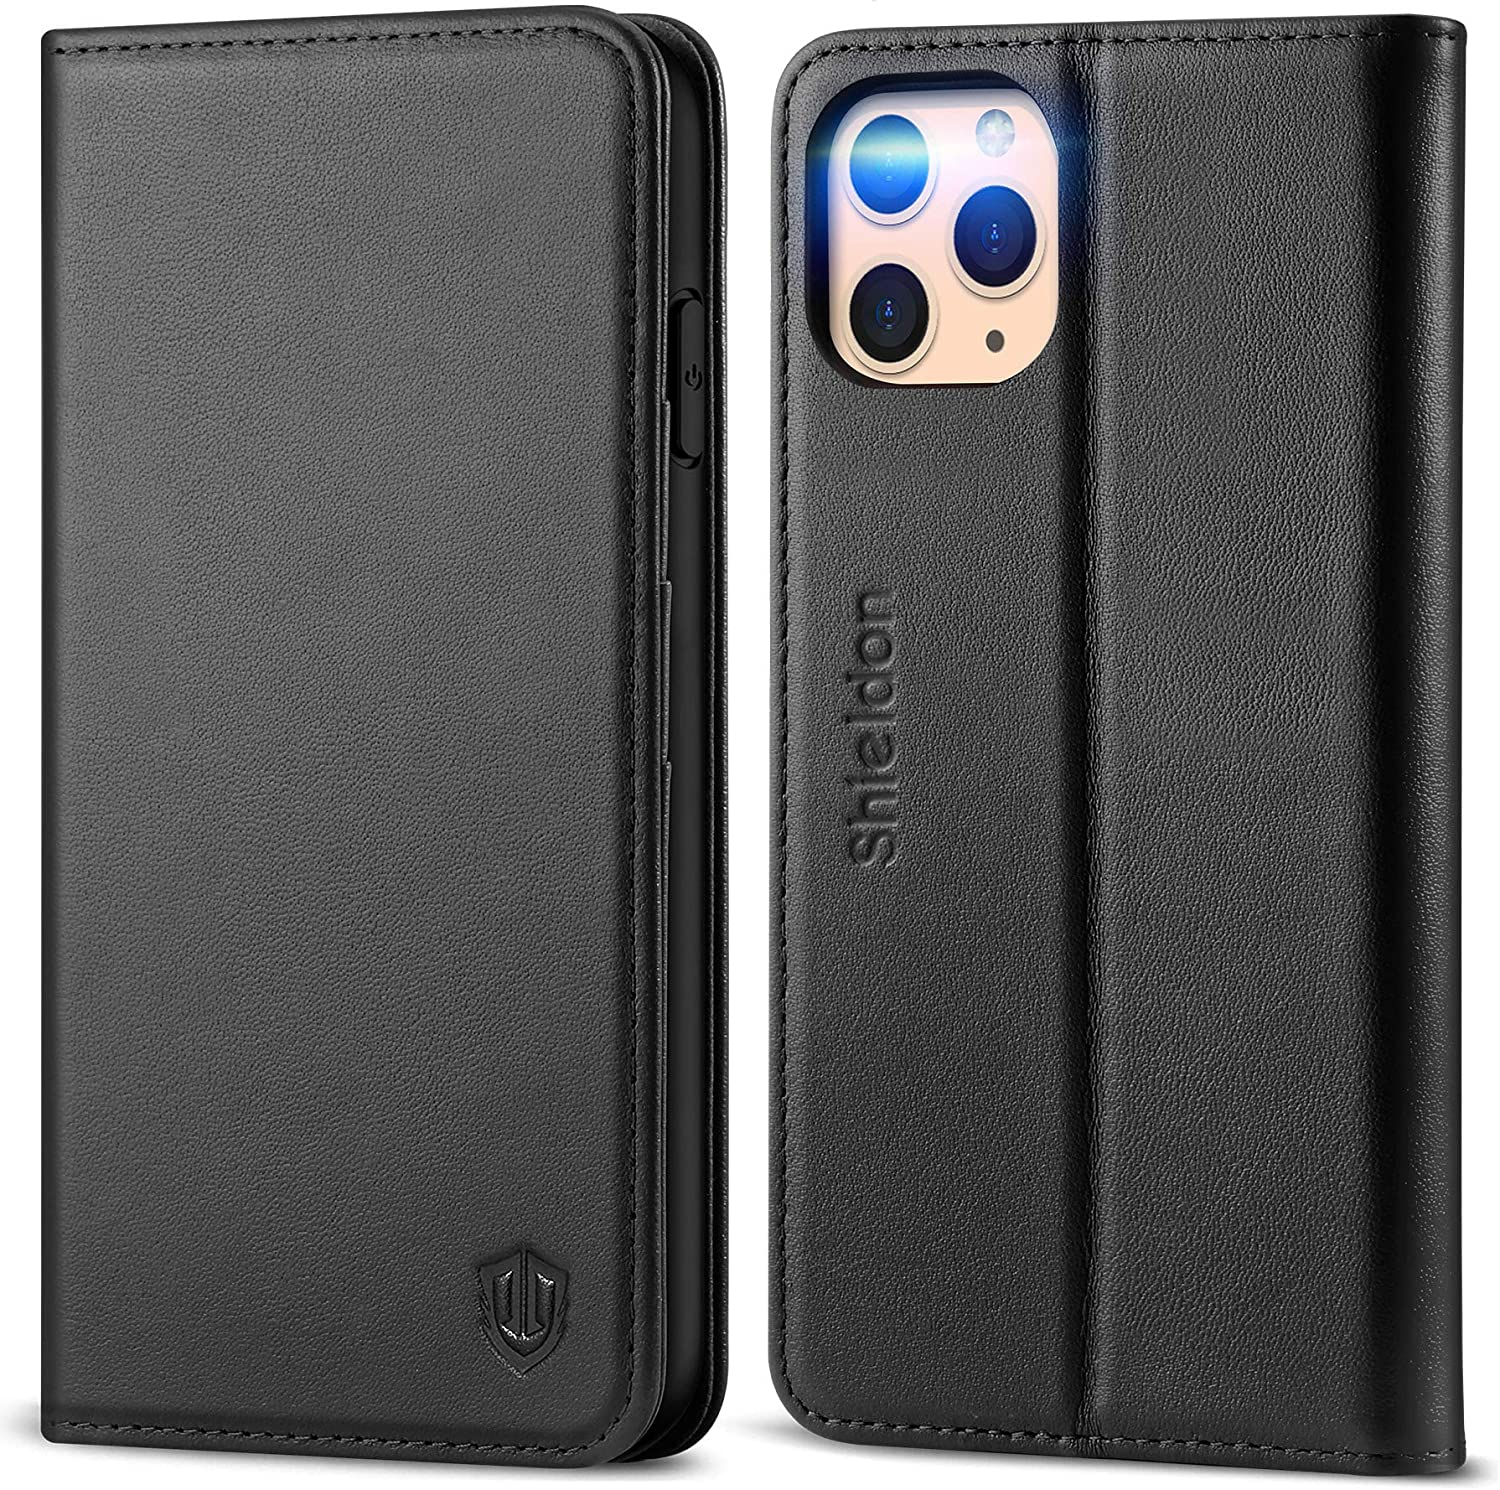 SHIELDON iPhone 11 Pro Max Case, Genuine Leather Auto Sleep Wake Wallet Case Flip Magnetic Cover RFID Blocking Card Slots Kickstand Shockproof Case Compatible with iPhone 11 Pro Max (6.5-inch) - Black